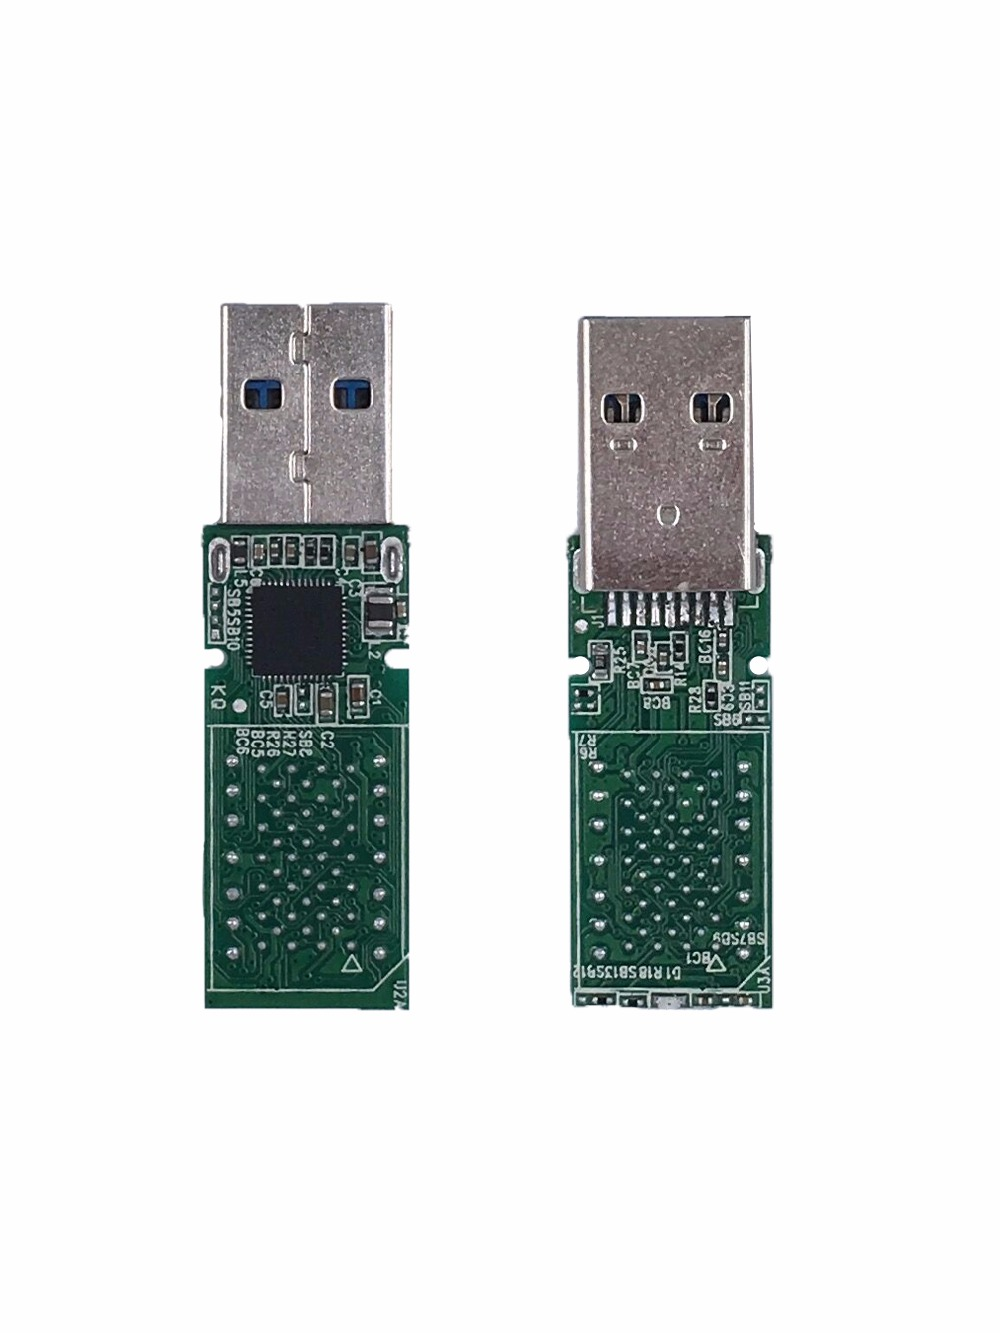 US $41 2 |100% Quality USB FLASH DRIVE PCBA, LGA60 Dual Pads, iphone  Controller USB3 0 PCBA with Cases, DIY UFD KITS-in Connectors from Lights &